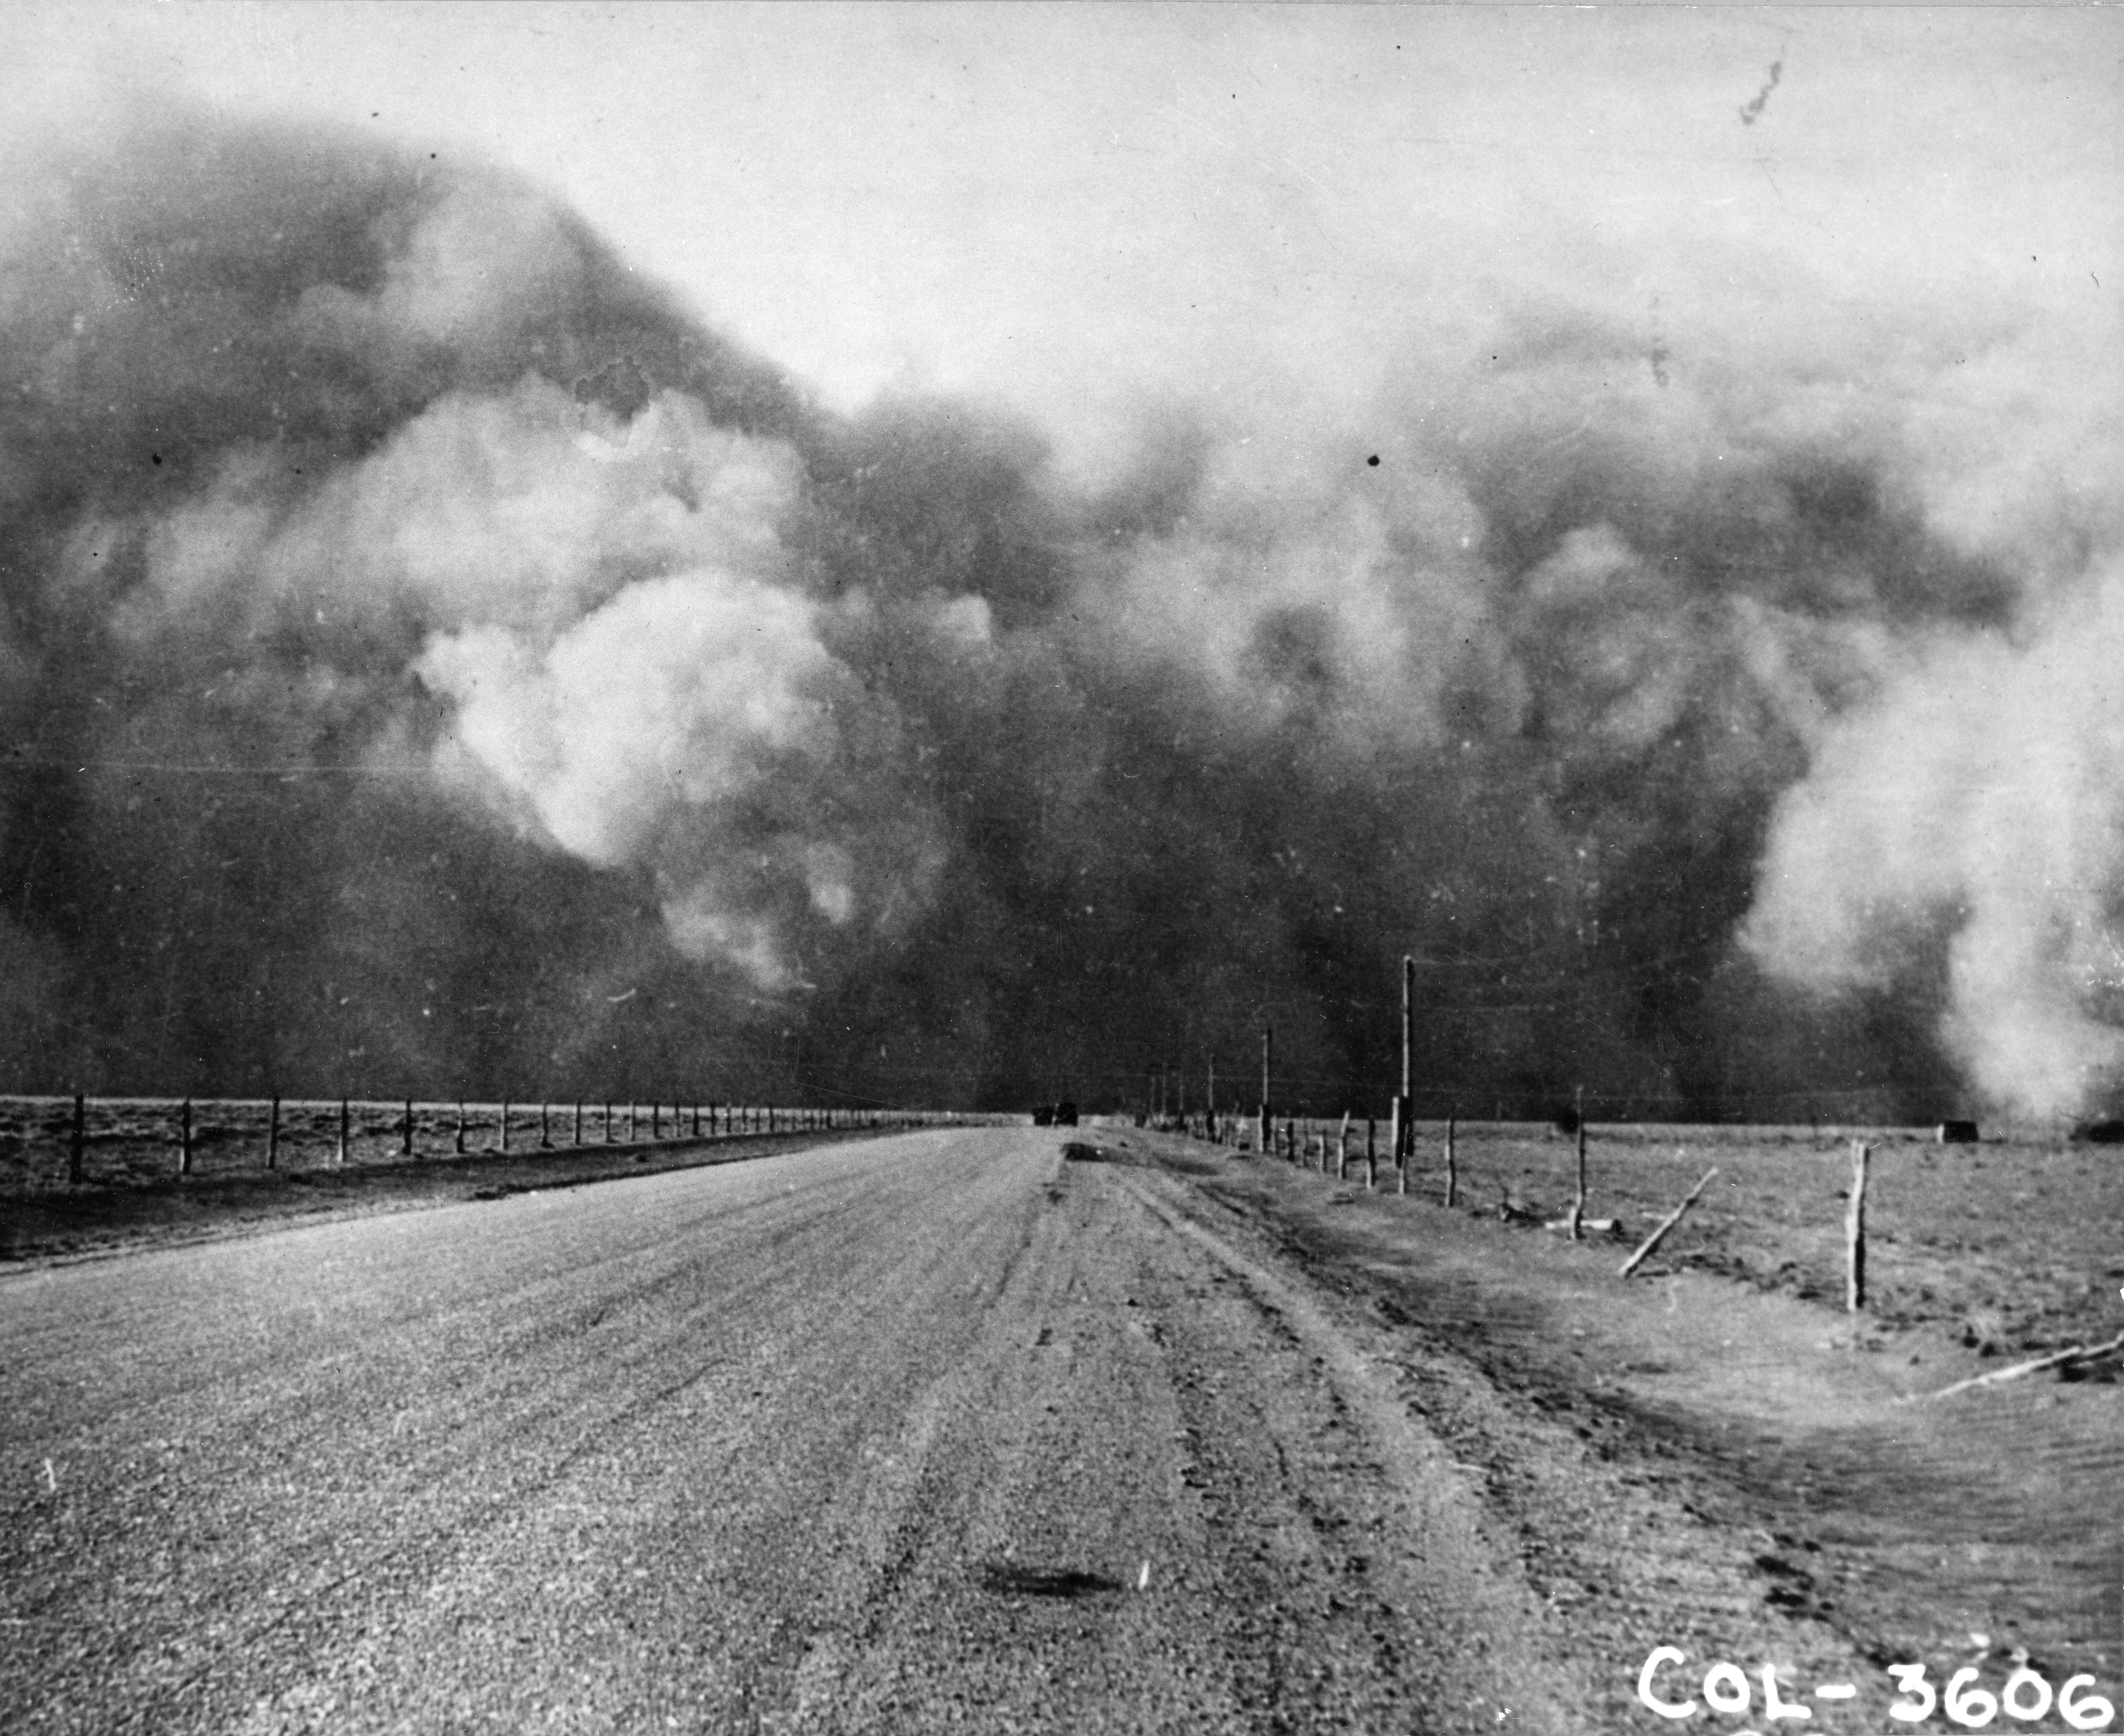 Science Tells Us a Dust Bowl 2.0 Is Yet Another New Reality of Climate Change Neglect